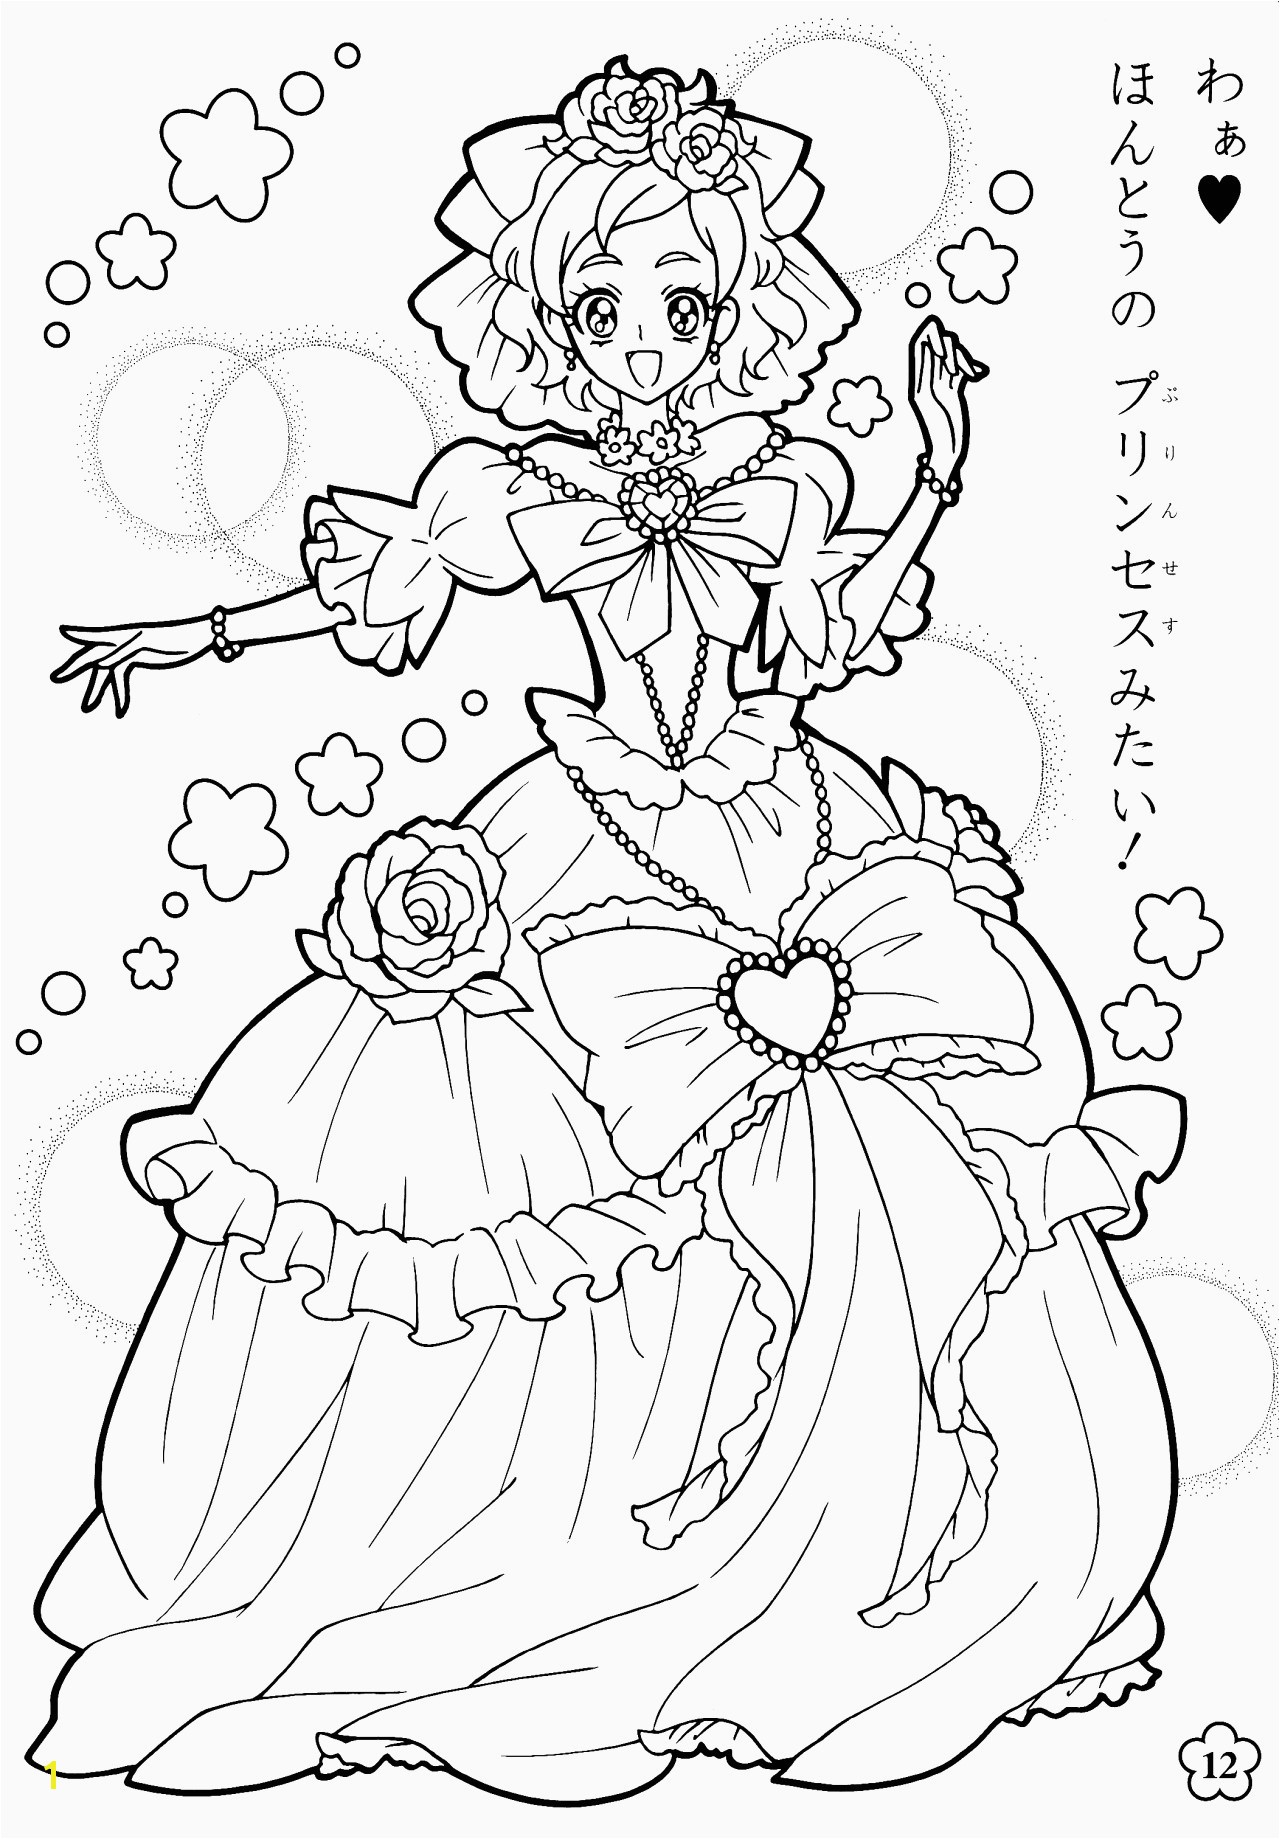 Africa Coloring Pages Luxury Cool Coloring Page Unique Witch Coloring Pages New Crayola Pages 0d